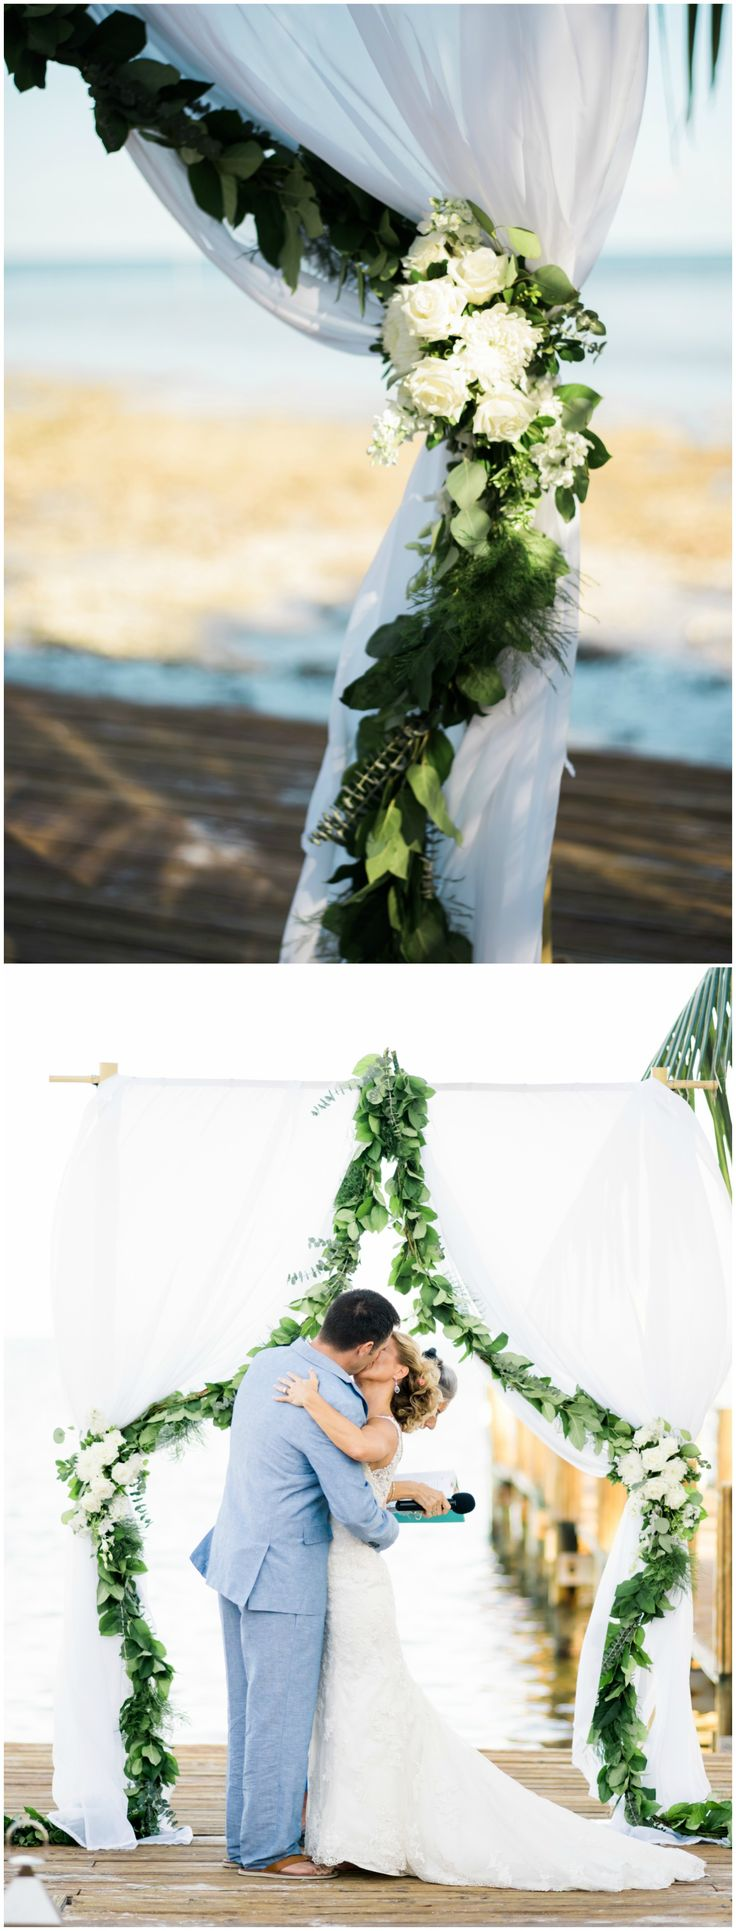 Outdoor coastal wedding ceremony, white wedding arbor, draped fabric, leafy garland, cream roses // Care Studios